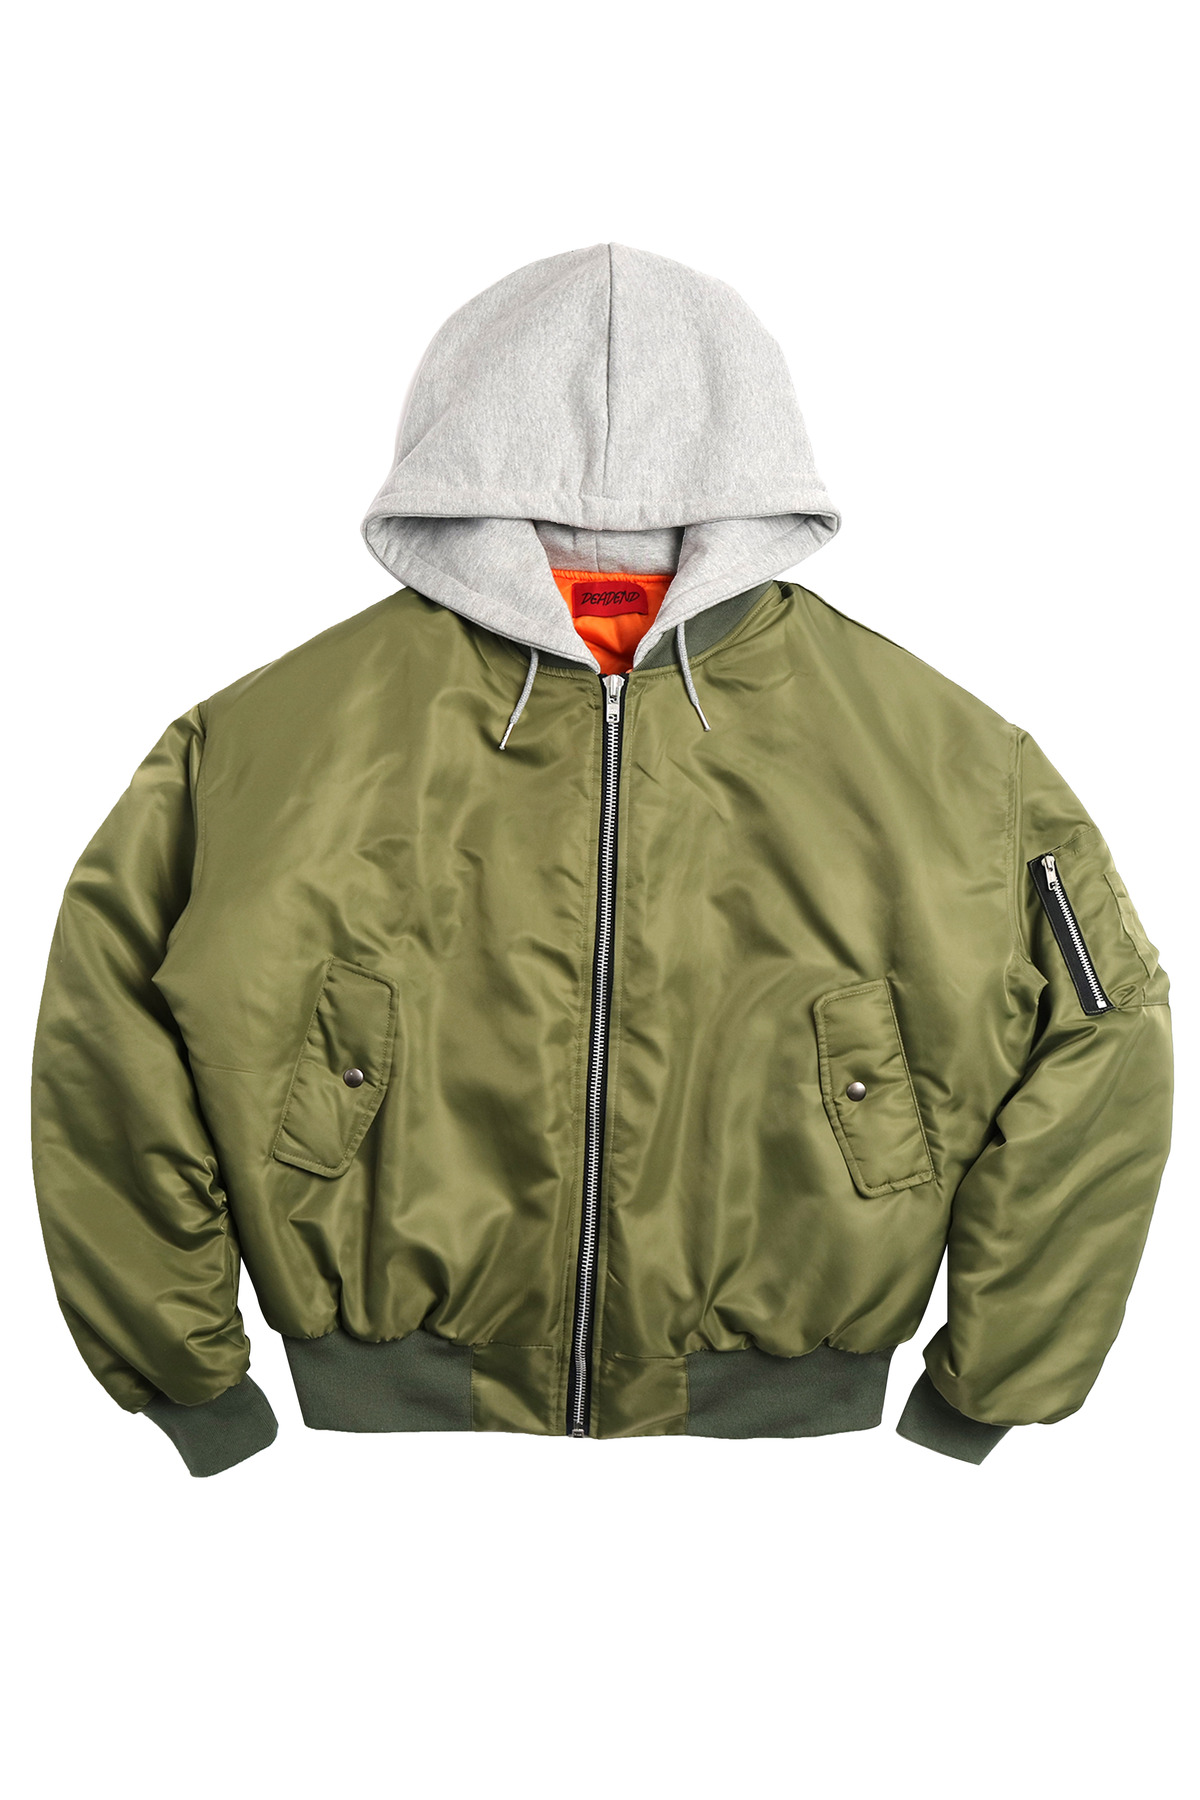 KHAKI REVERSED BOMBER JACKET